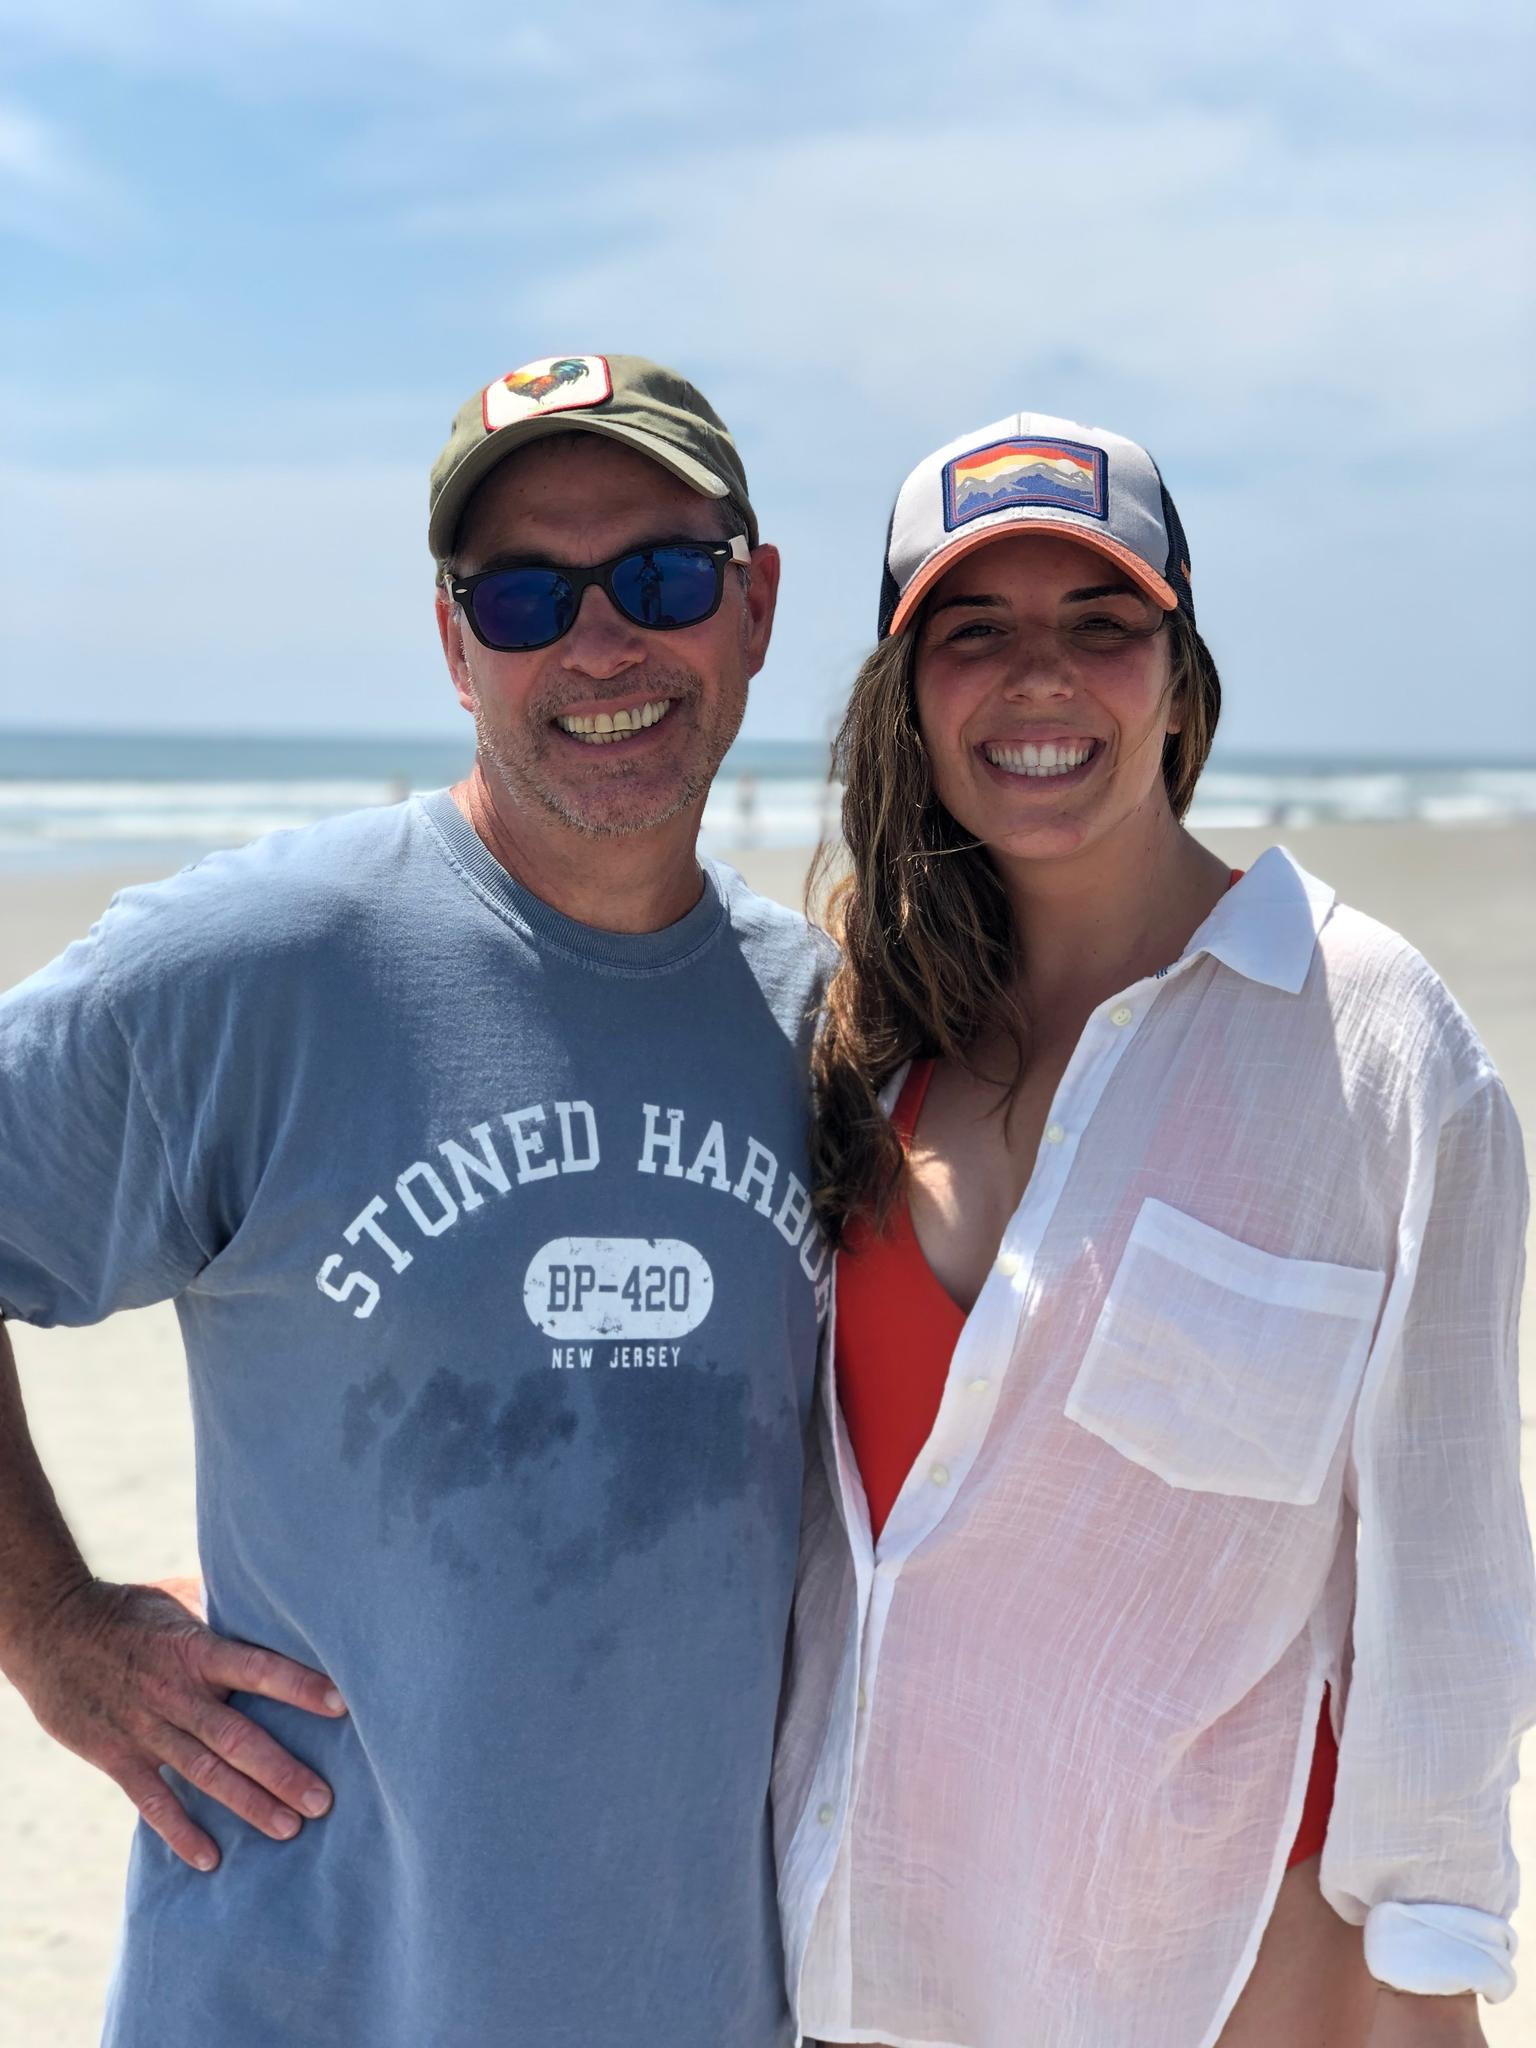 Taylor with her dad, Louie, during their annual family beach trip in Stone Harbor, NJ.